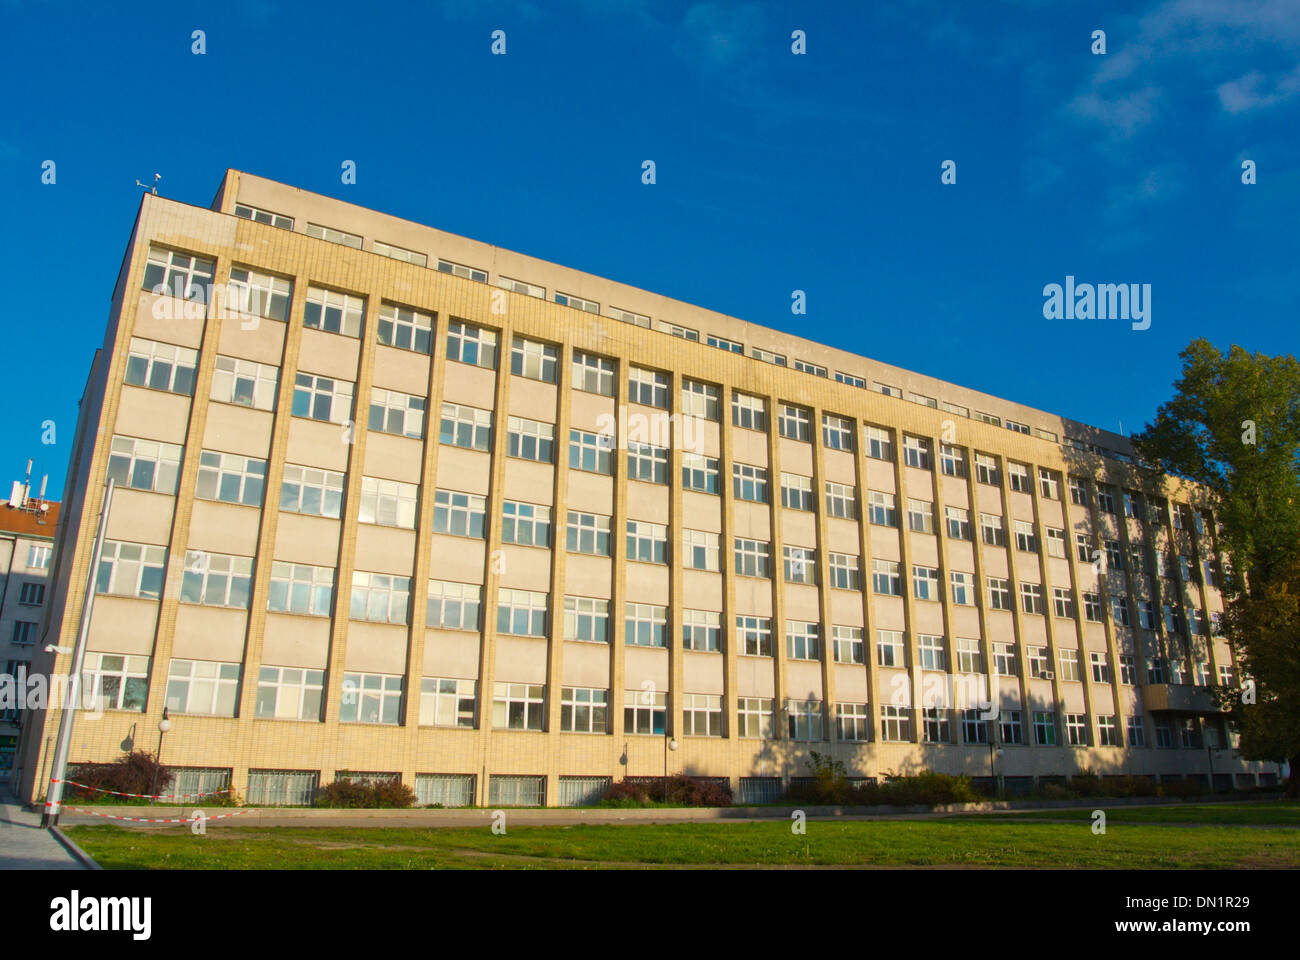 Home Office the interior ministry govenment building Bubenec district Prague Czech Republic Europe - Stock Image